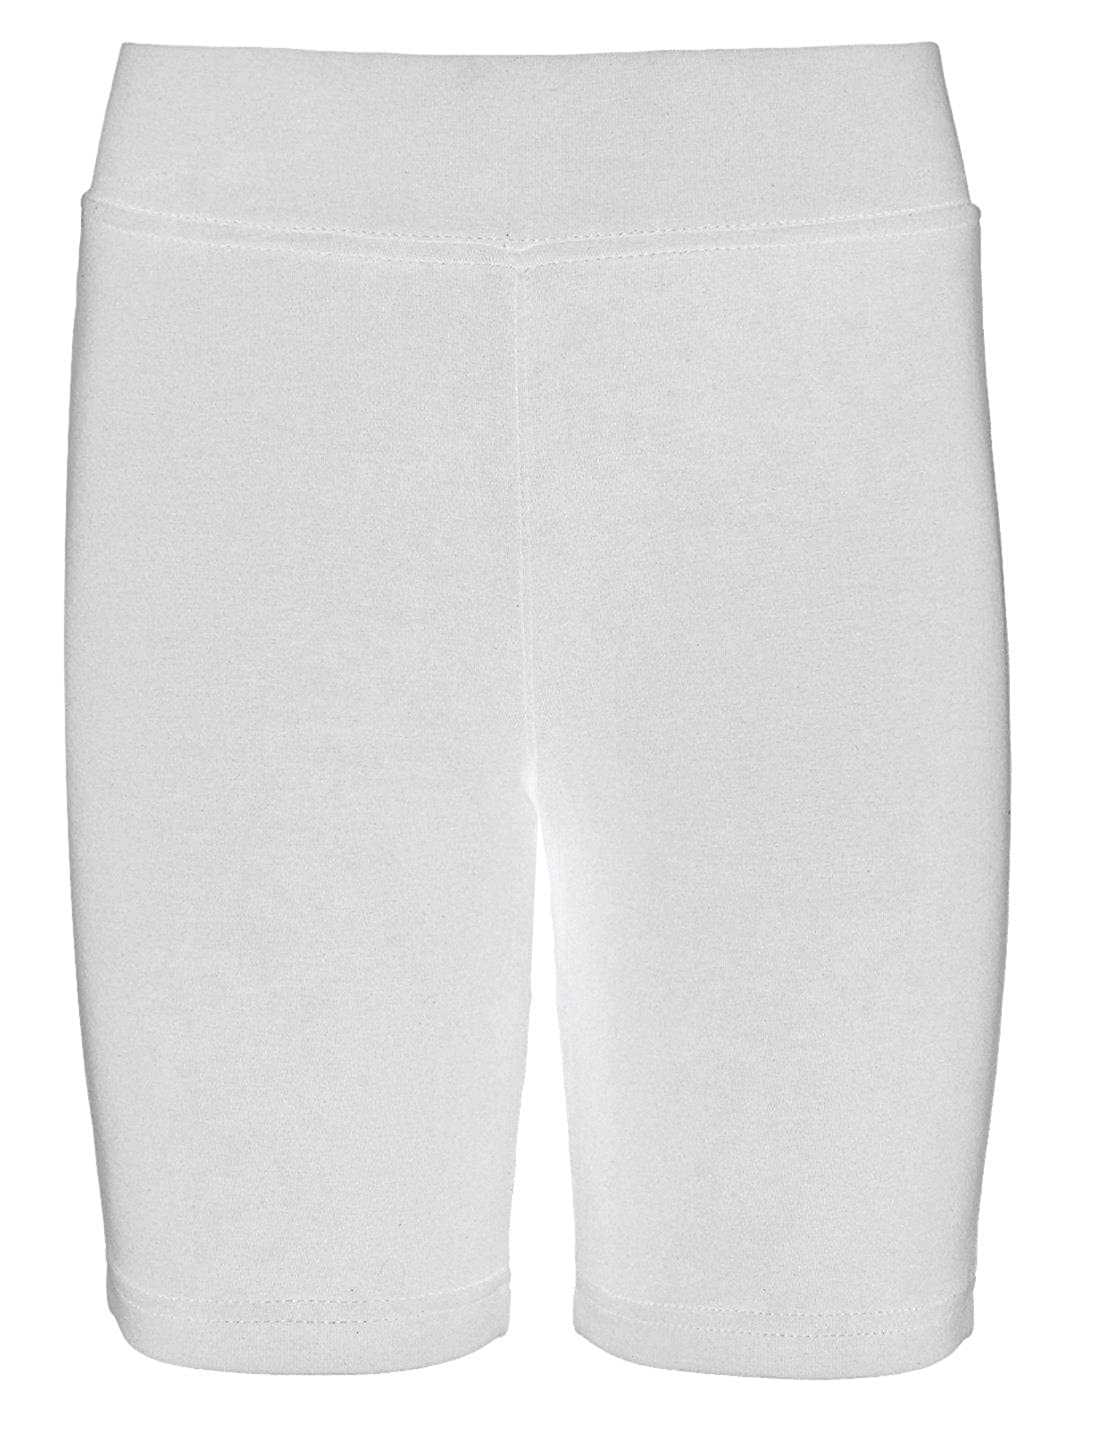 Love Lola Childrens Cycle Shorts Girls Dance Exercise Kids PE Athletics Cycling Pants Over The Knee Ballet Stretch Running Irish Dancing School Shorts by Brody /& Co/®